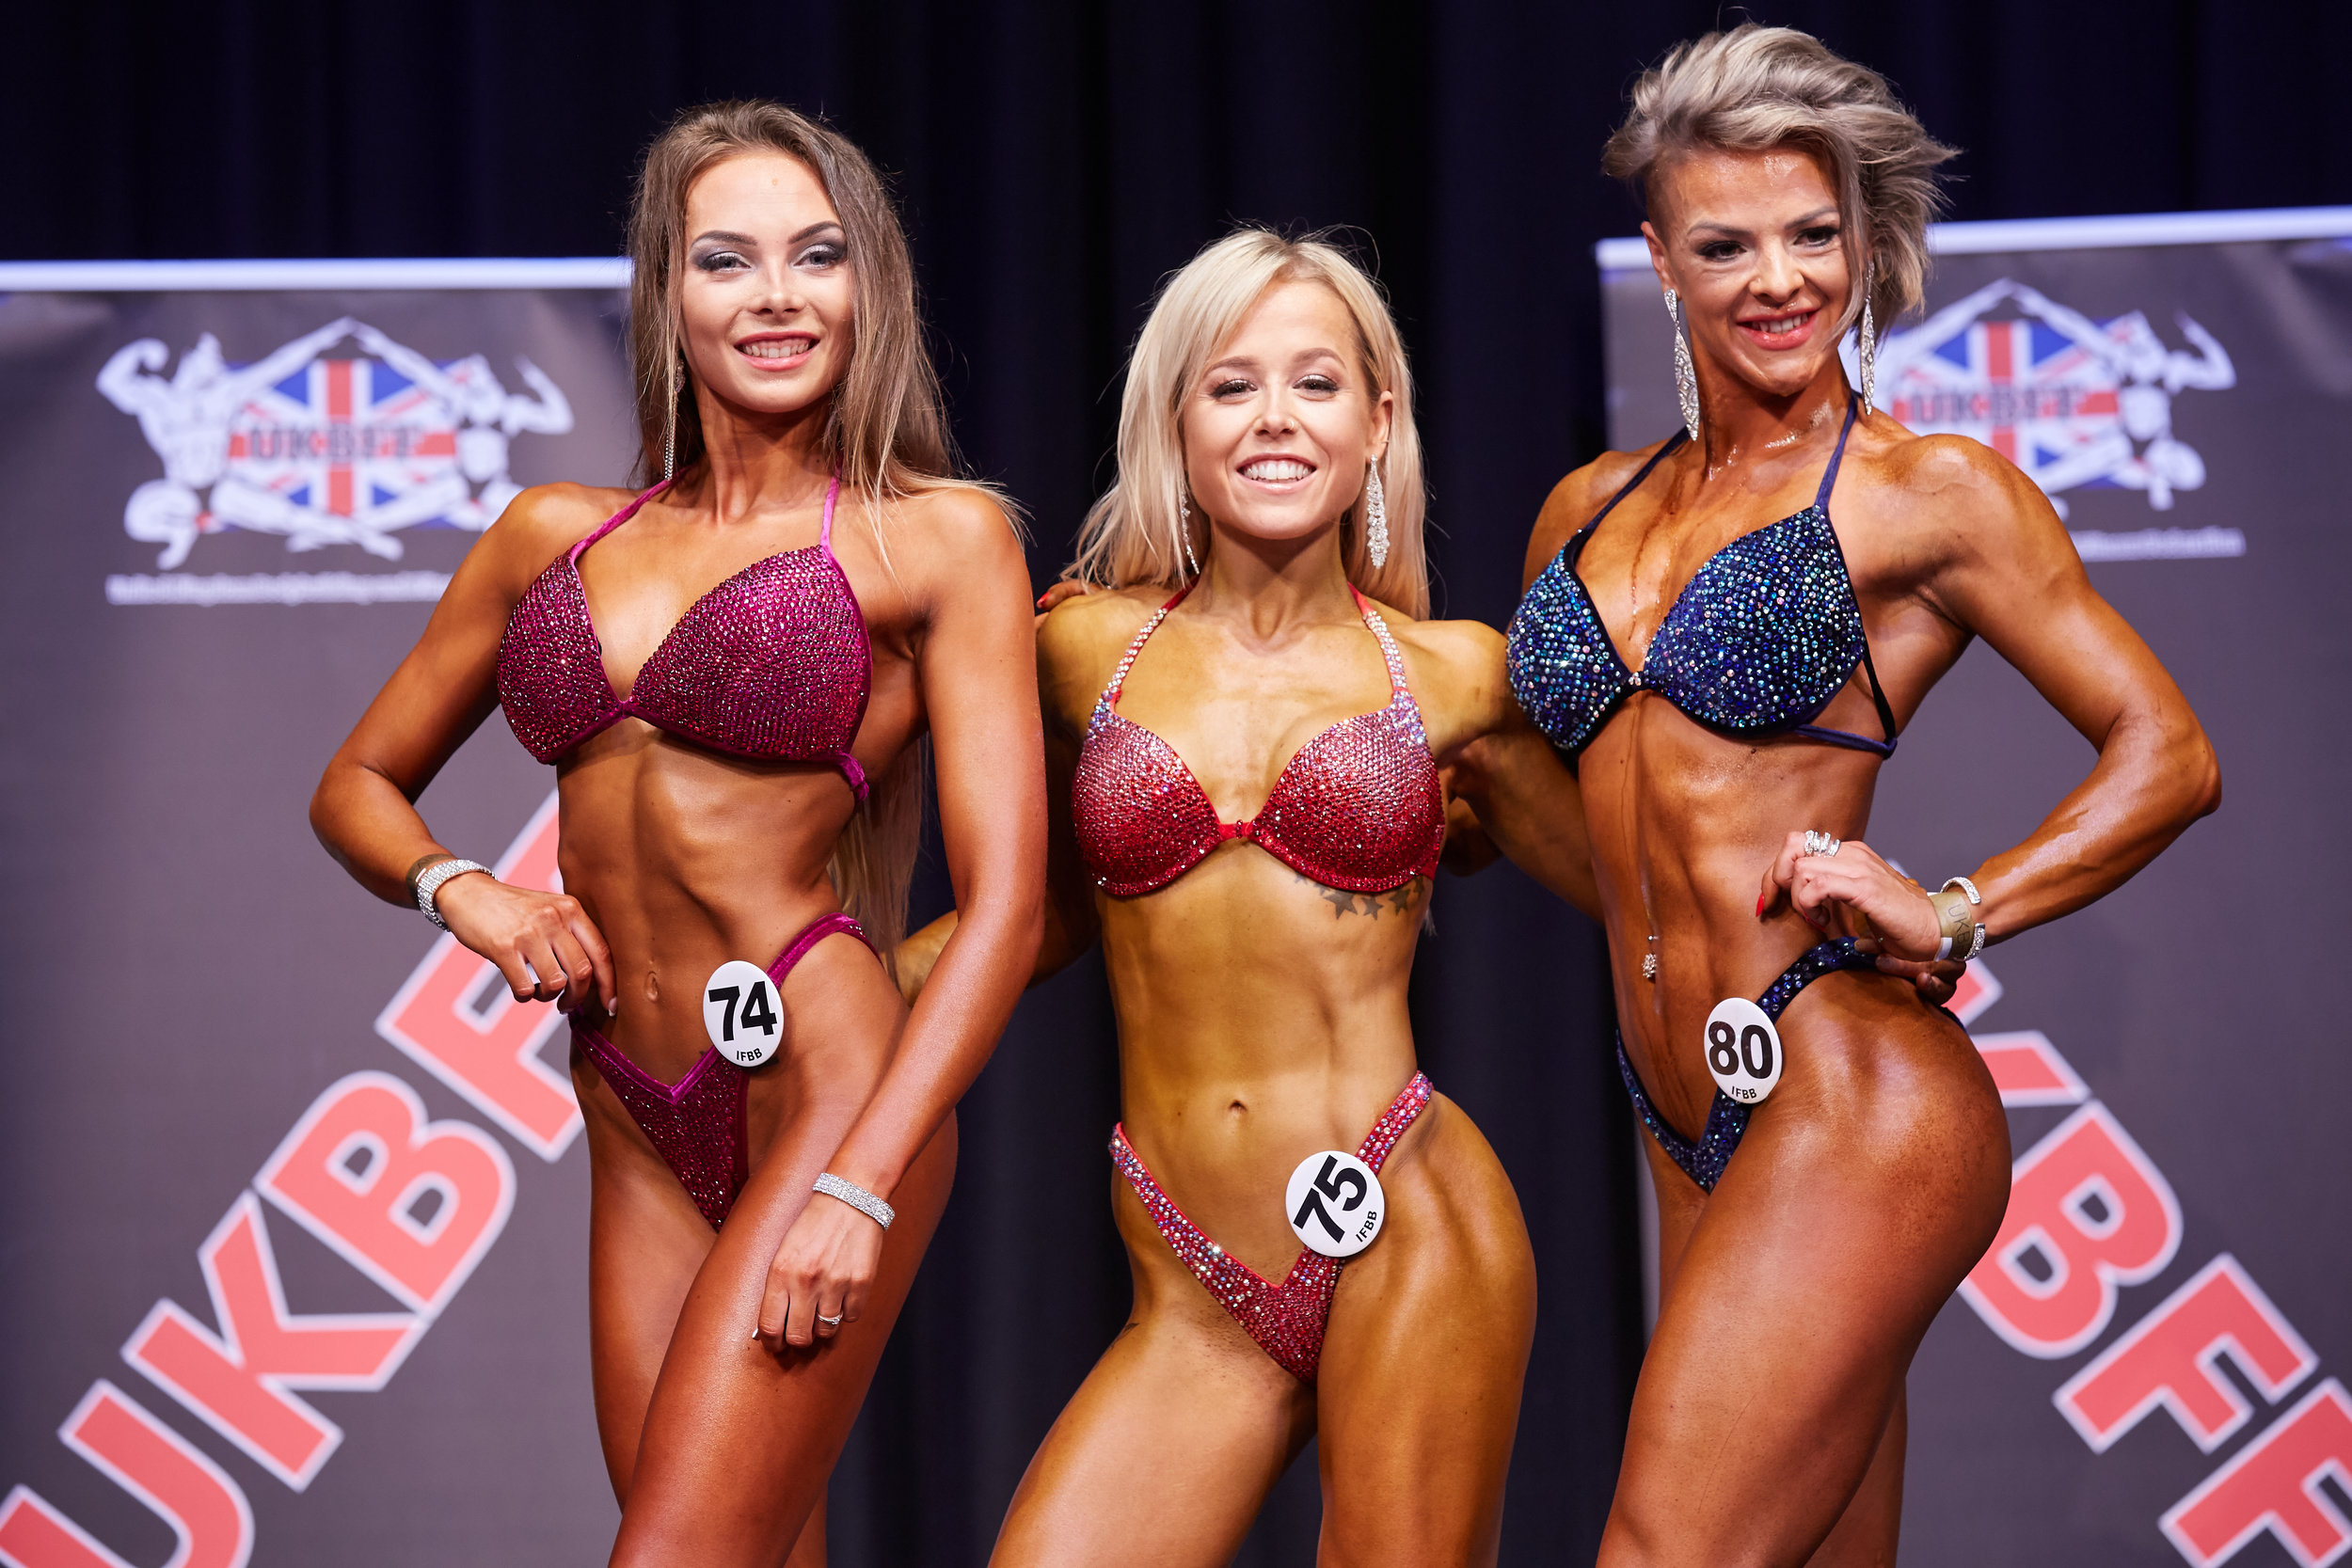 Hannah Wares (centre) wins bikini fitness up to 164 cm, ahead of runner-up Dehisa Ardeleah (right) and third place Gerda Siaciulyte.